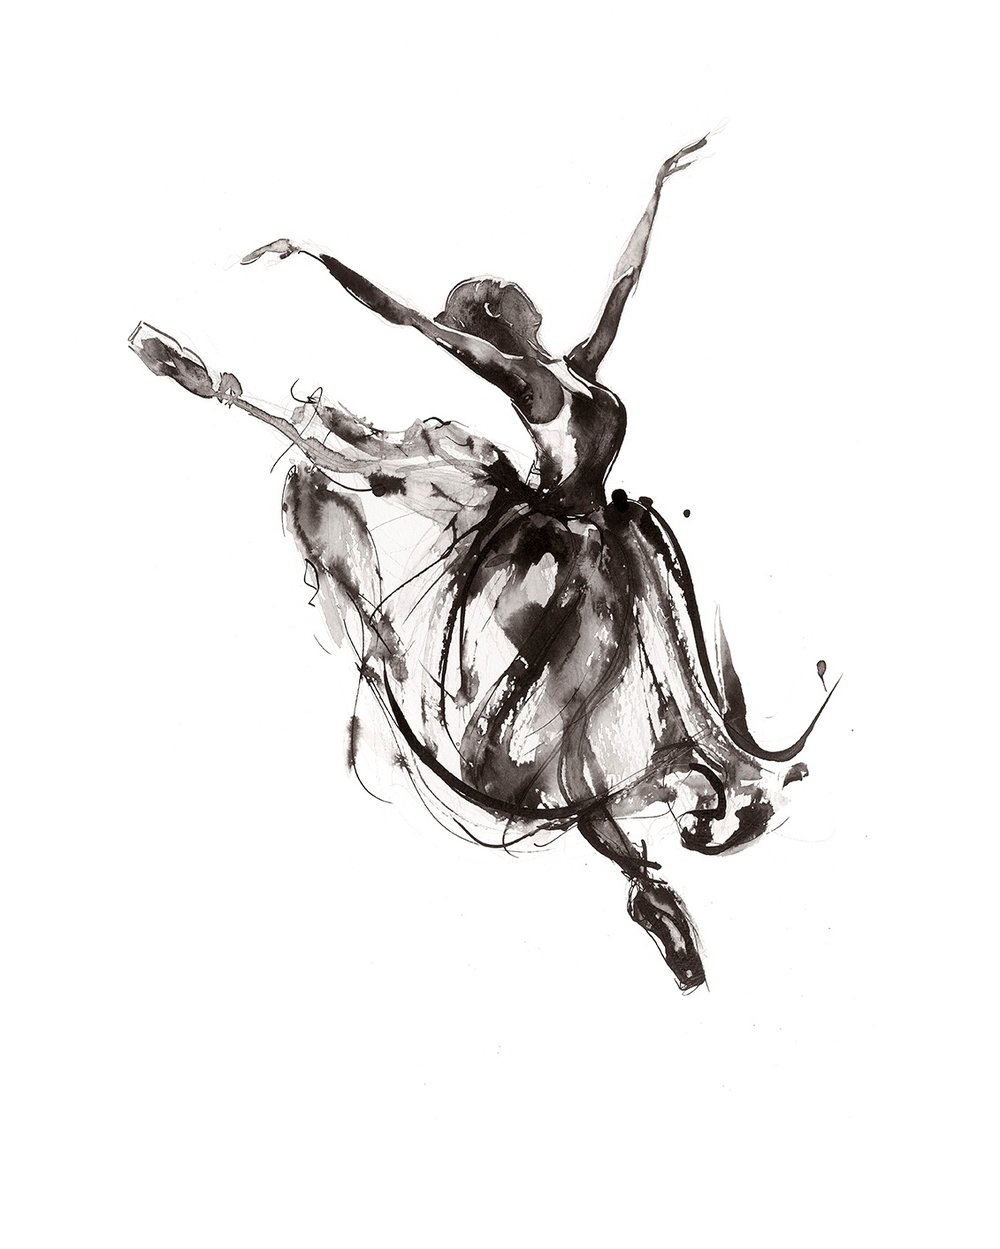 'In Flight'.  Fine Art Print by Artist, Dana Trijbetz.  Ballet Dancers Collection.  Original Ink Painting made as a Giclée Print on 100% Cotton Paper.  Image 2 of 3.jpg